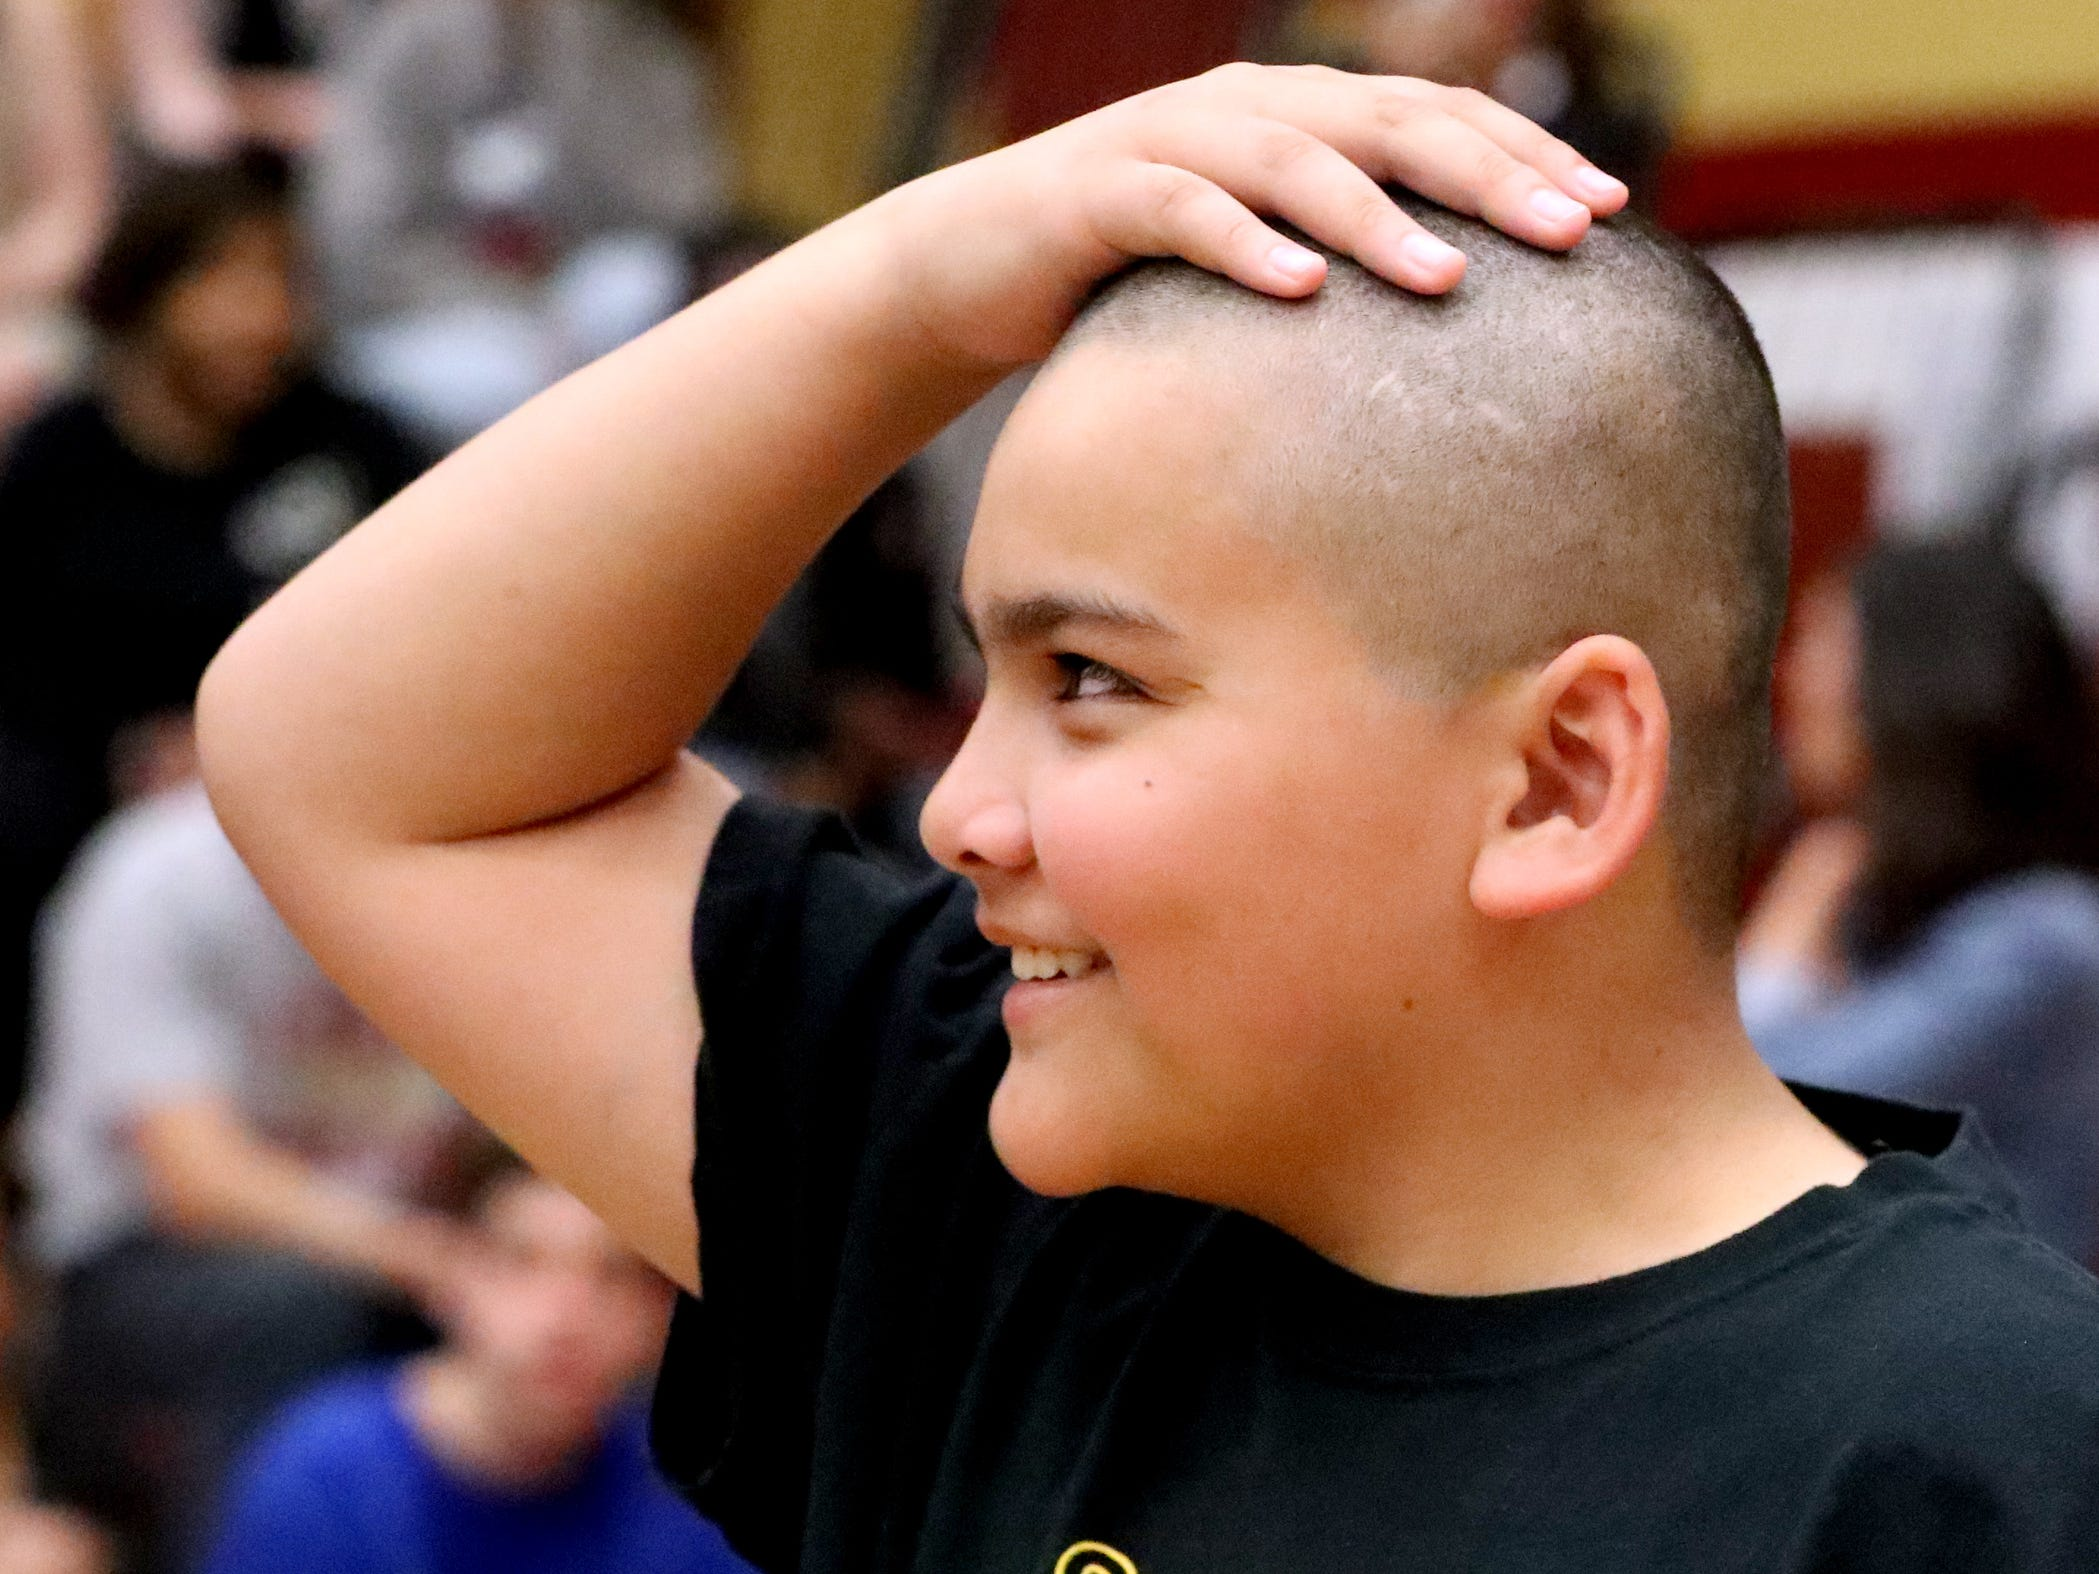 Kilin Wilson, 13, feels his head after he had it shaved during Riverdale High School's sixth annual Brave the Shave fundraiser to benefit St. Baldrick's Foundation on Thursday, March 21, 2019. The organization raises funds and awareness for childhood cancer.